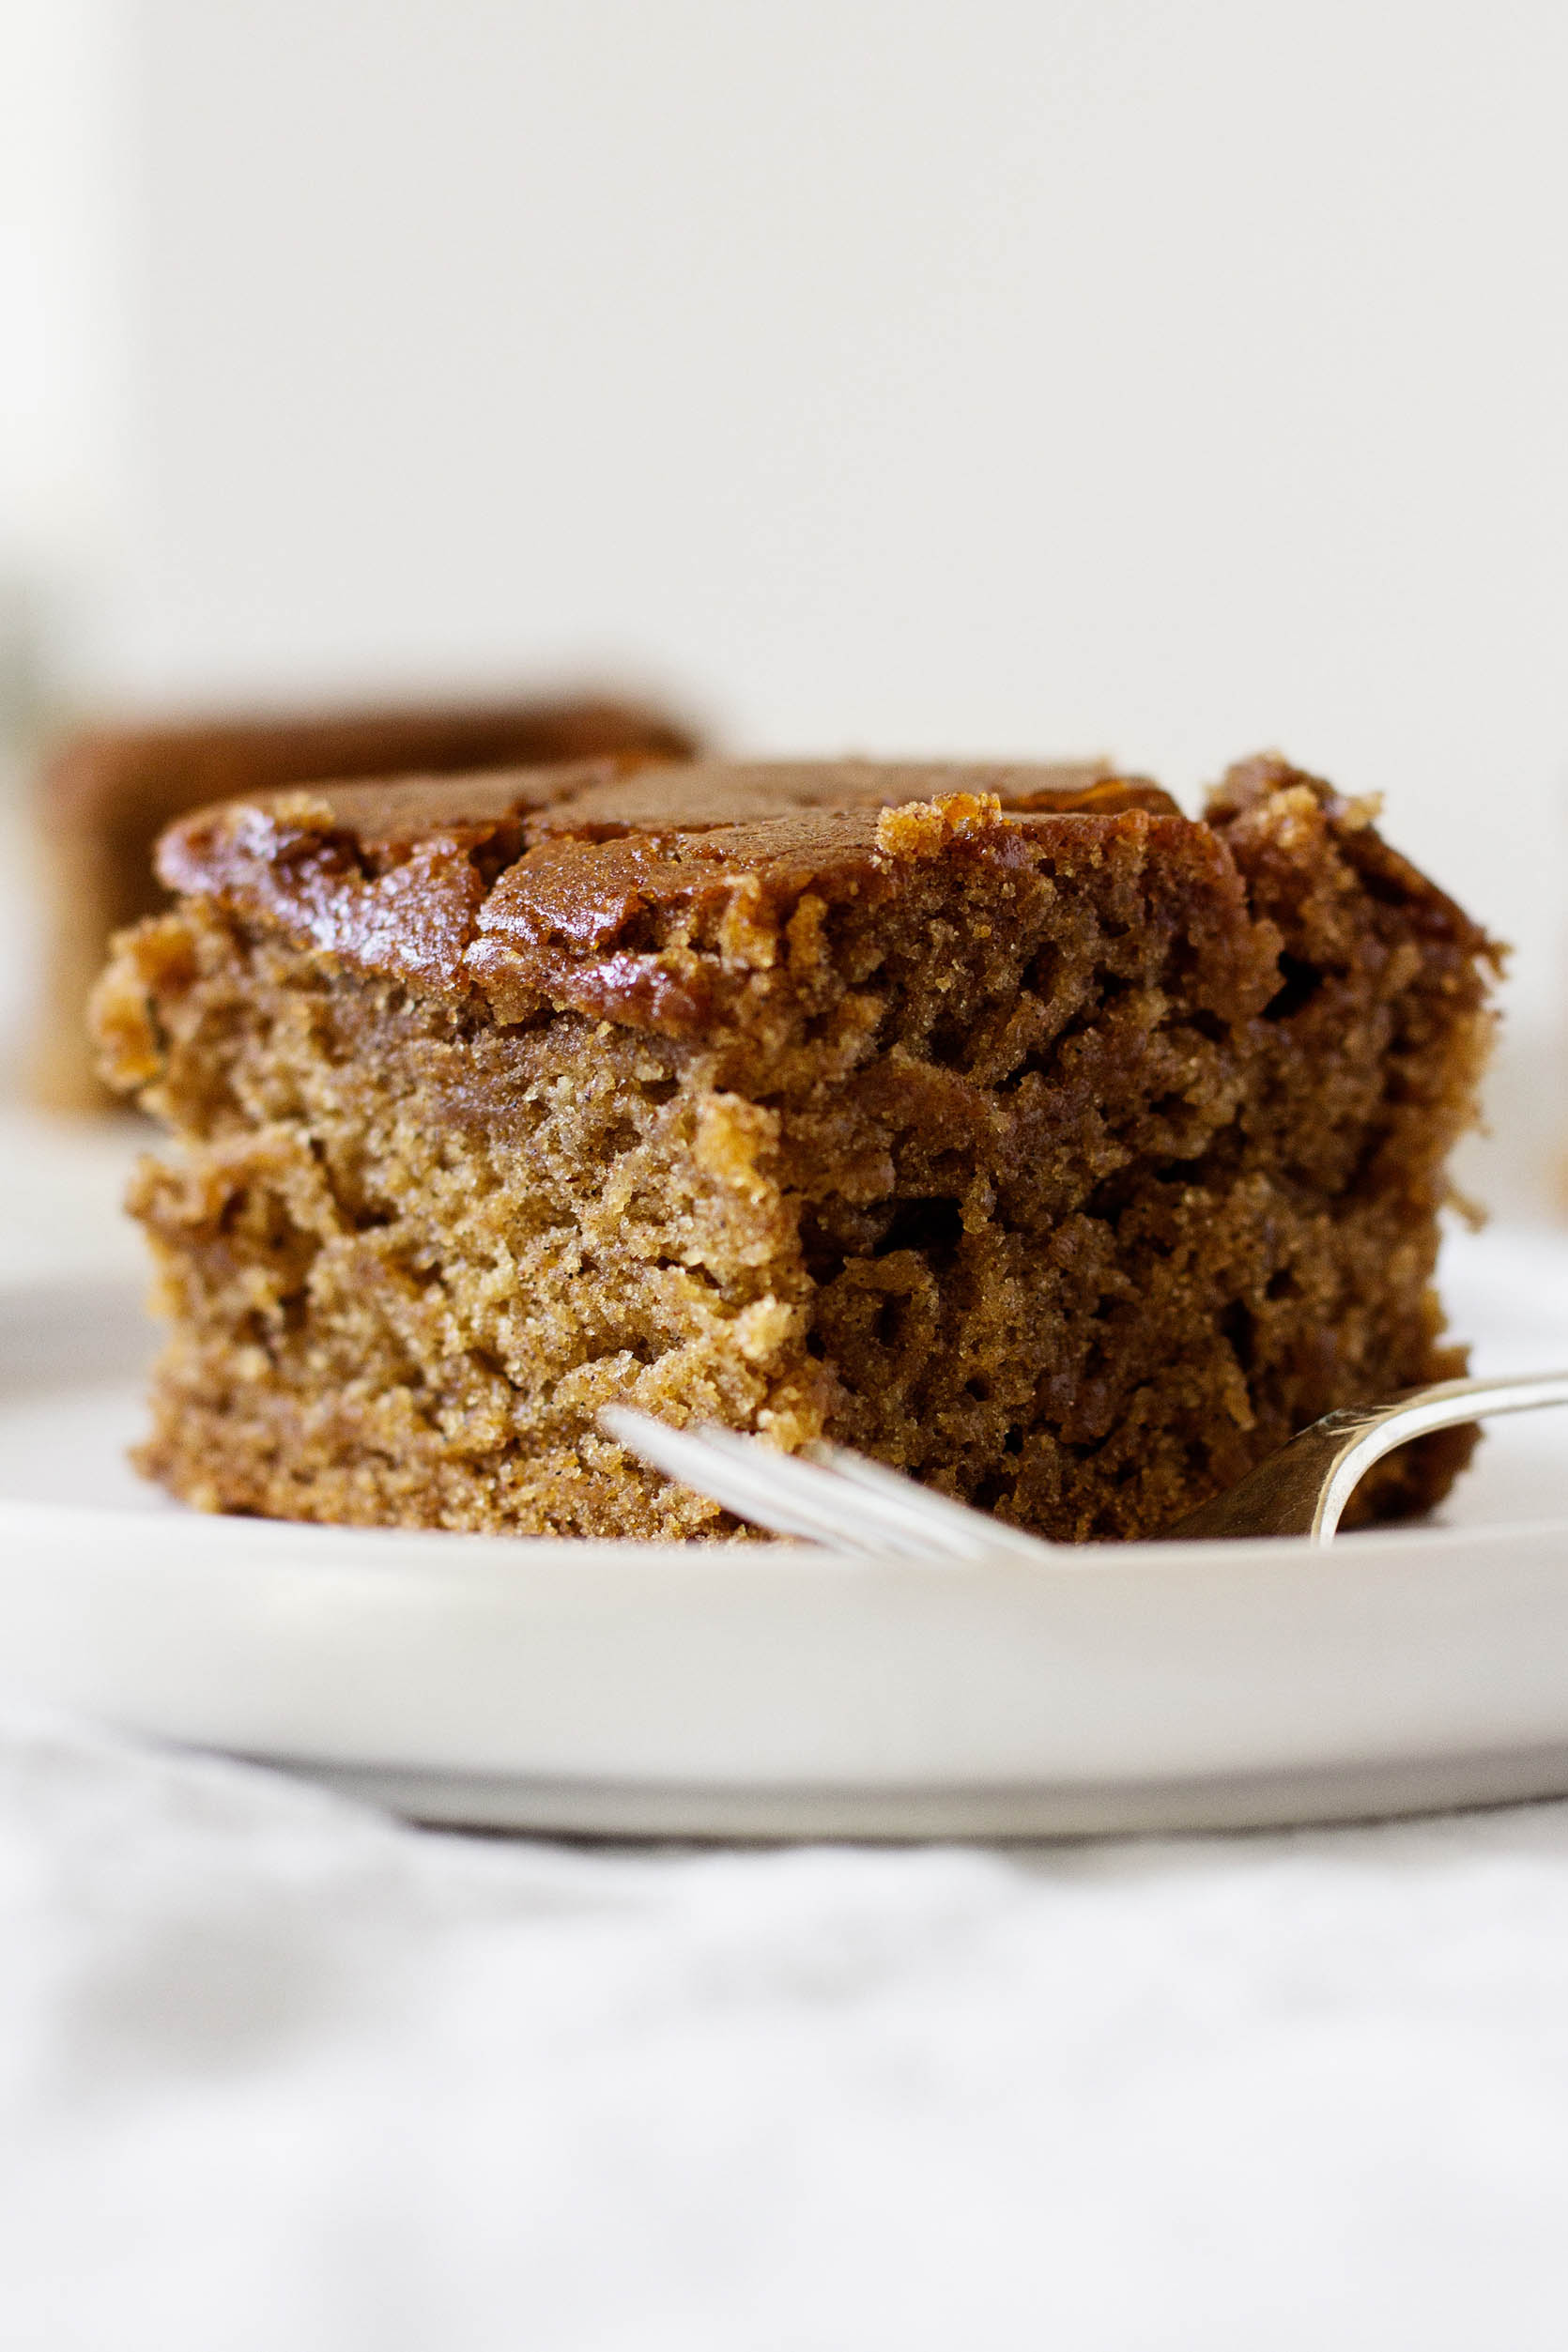 A zoomed in photograph of a vegan holiday cake, accompanied by a small serving fork.